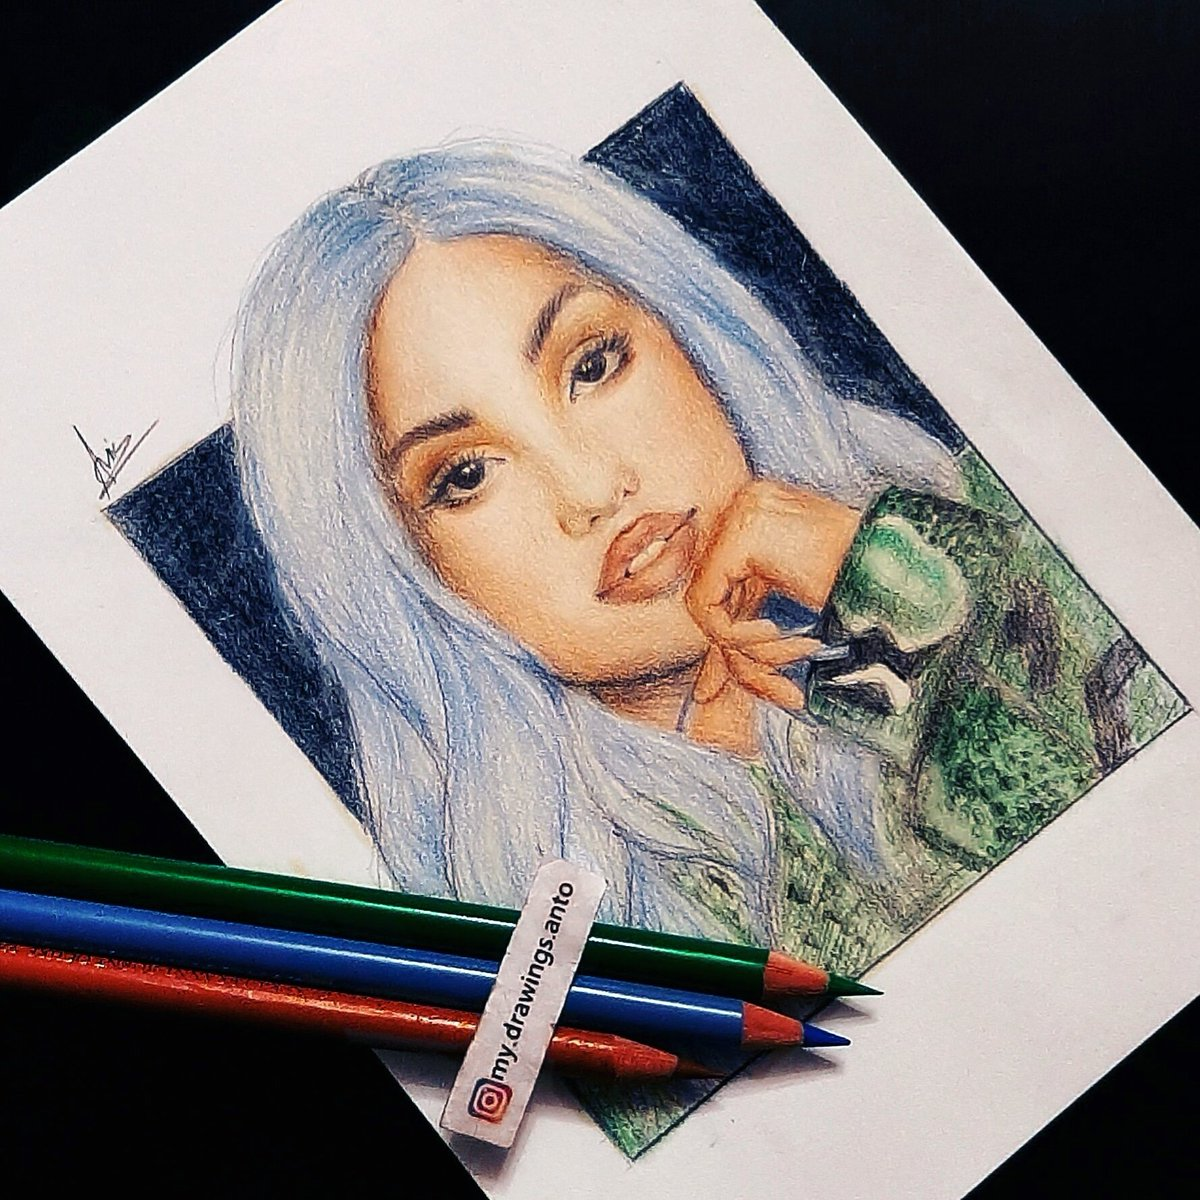 Only a few hours left until we can listen to @Mabel's new song, #boyfriend! 🎶 Who's excited? 🙋🏽‍♀️🙋🏽‍♀️🙋🏽‍♀️  Check out my drawing of Mabel! 🎨 I hope you like it! ❤  #Mabel #FanArt #Drawing